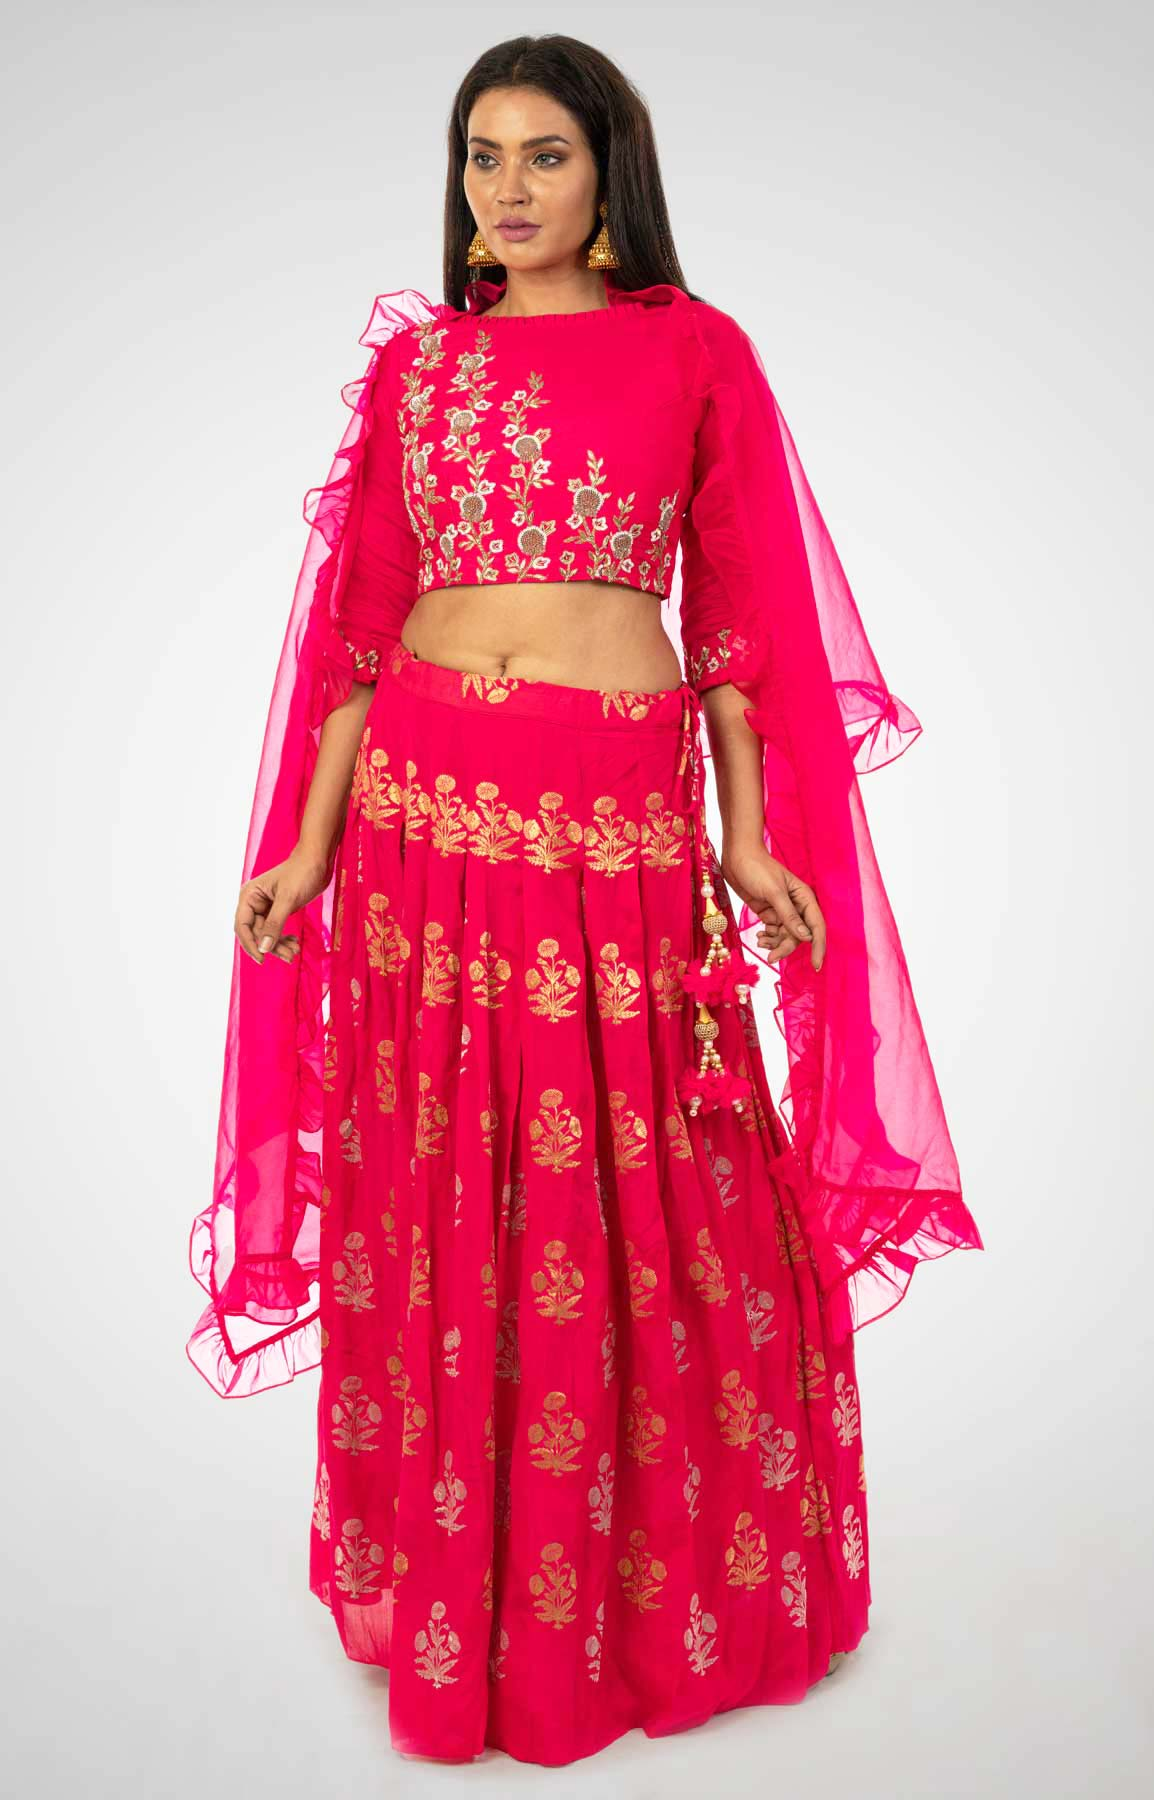 Rani Pink Dupion Silk Crop Top And Skirt With Zardozi Work – Viraaya By Ushnakmals